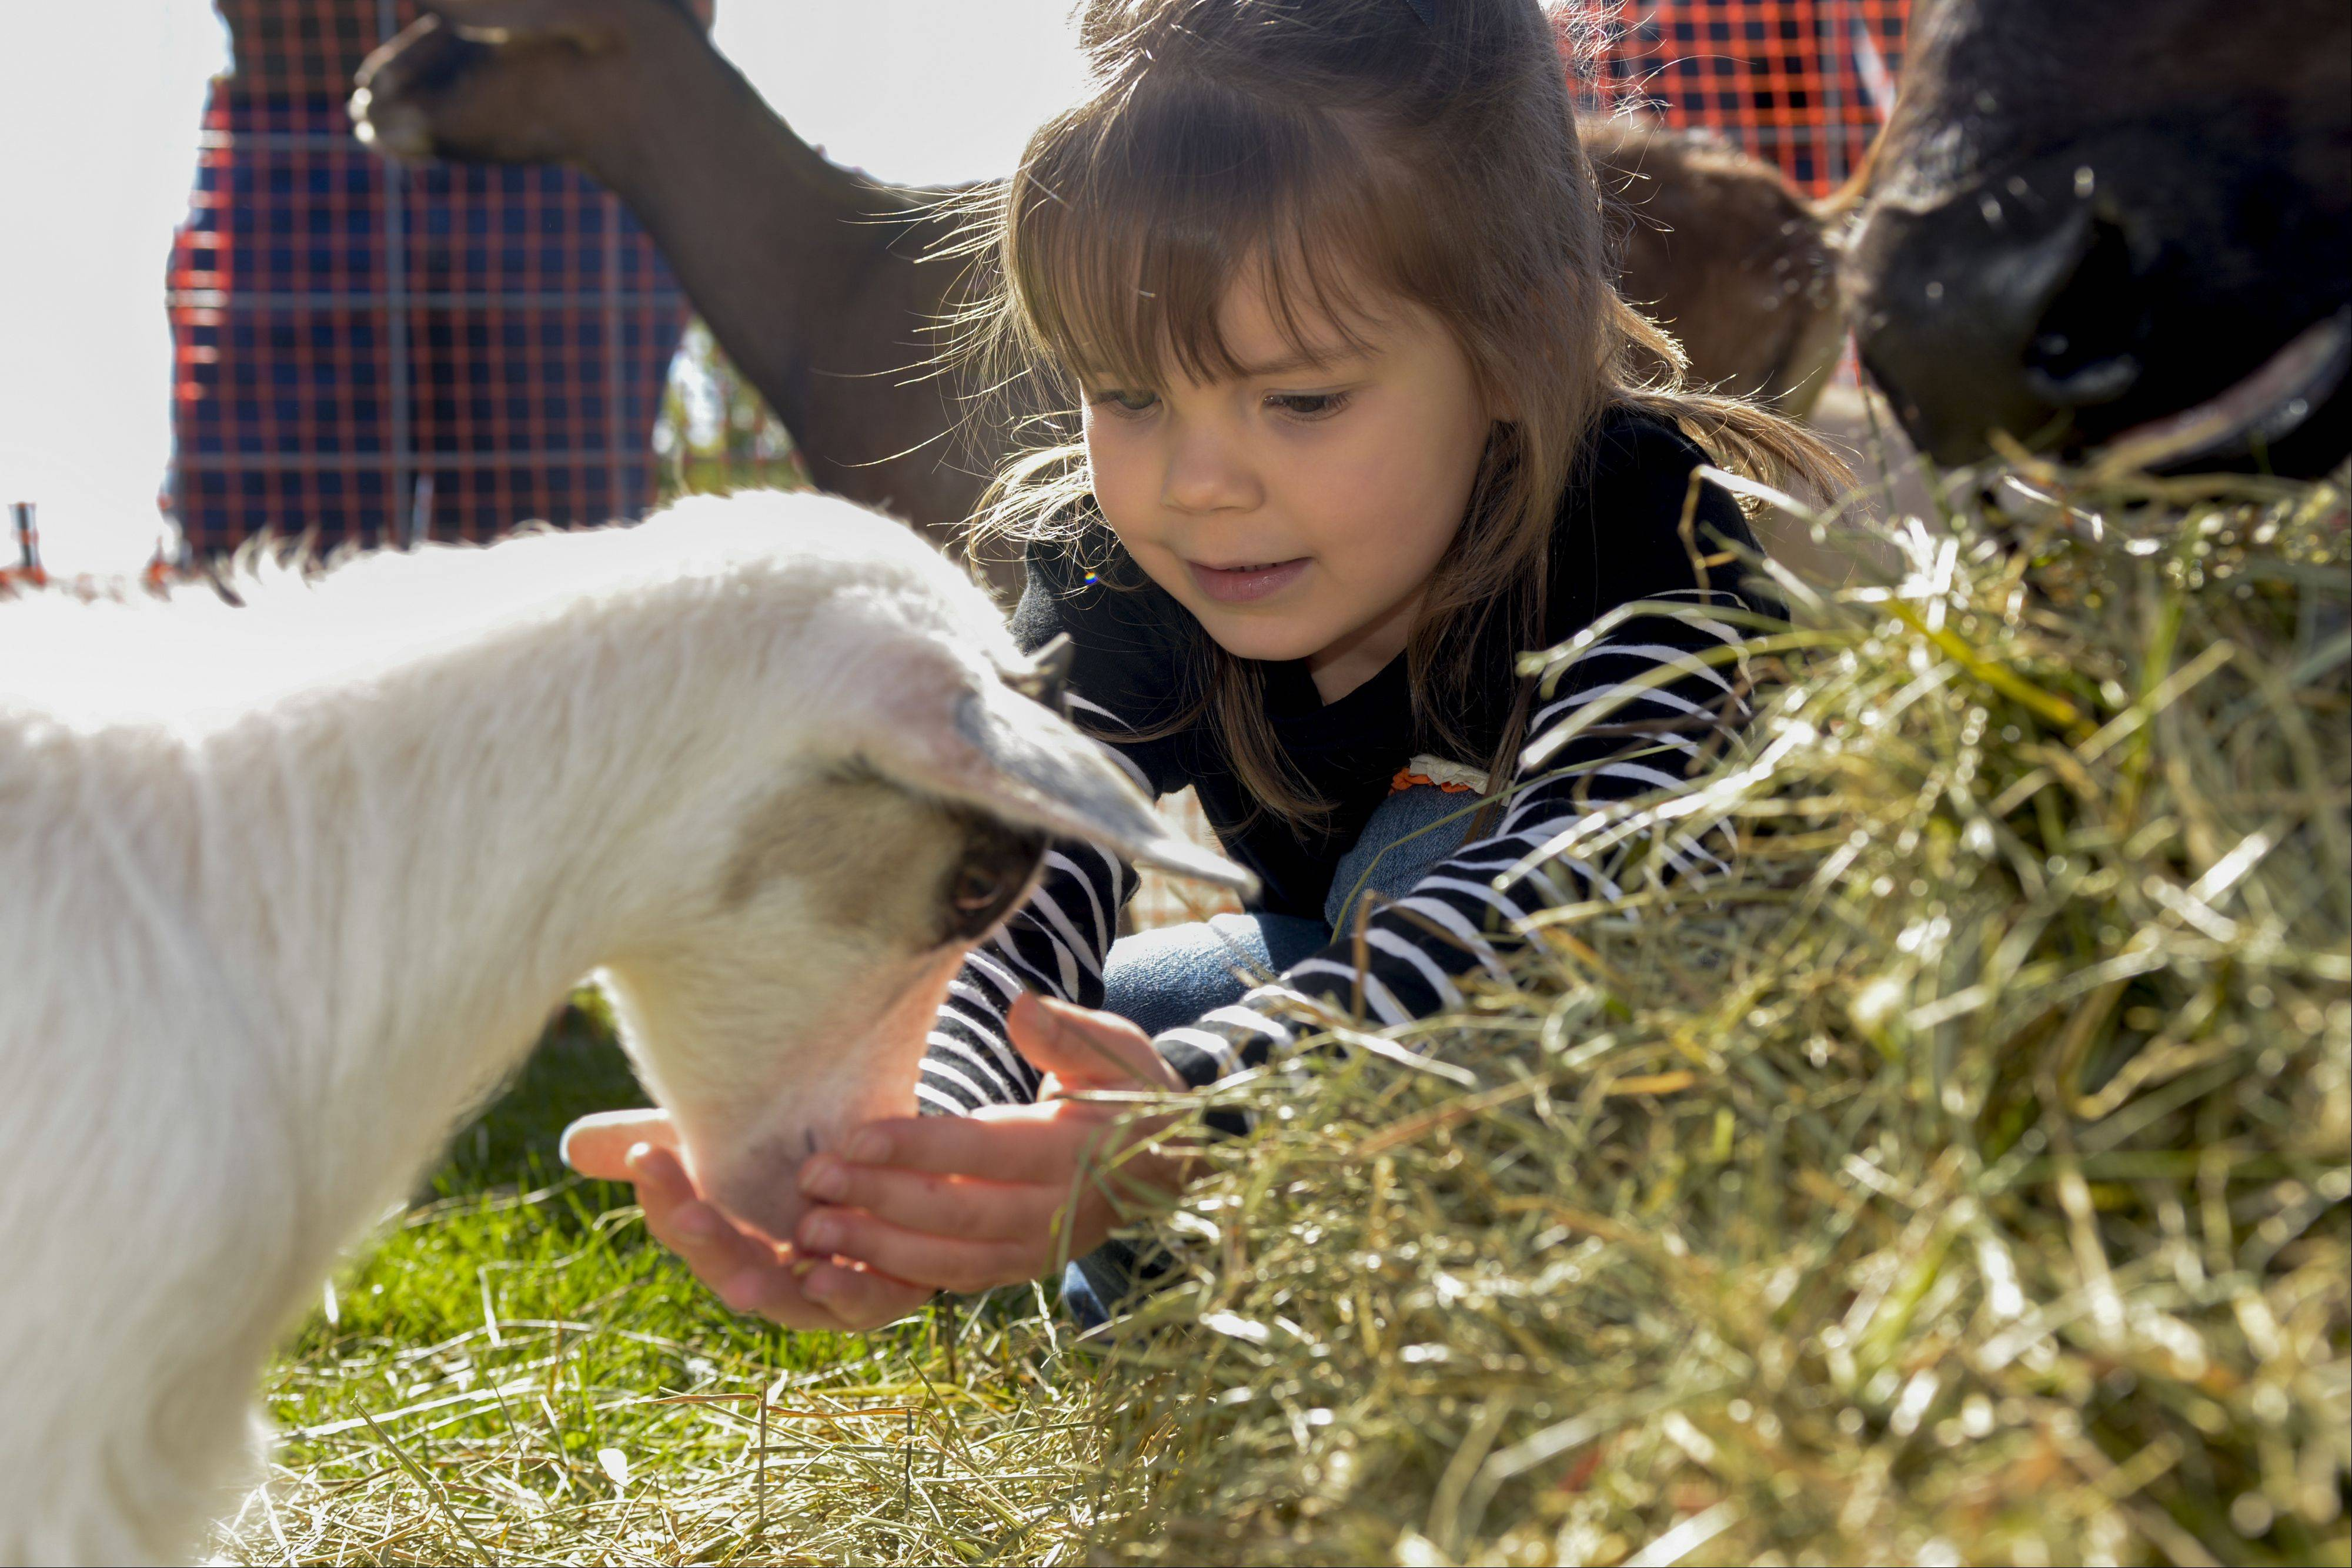 Leah Stiles, 4, of Grayslake feeds a baby goat Sunday while visiting the Bonner Heritage Farm's Country Fair in Lindenhurst. The event featured wagon rides, crafts, games and a petting zoo on an 1842 farm.